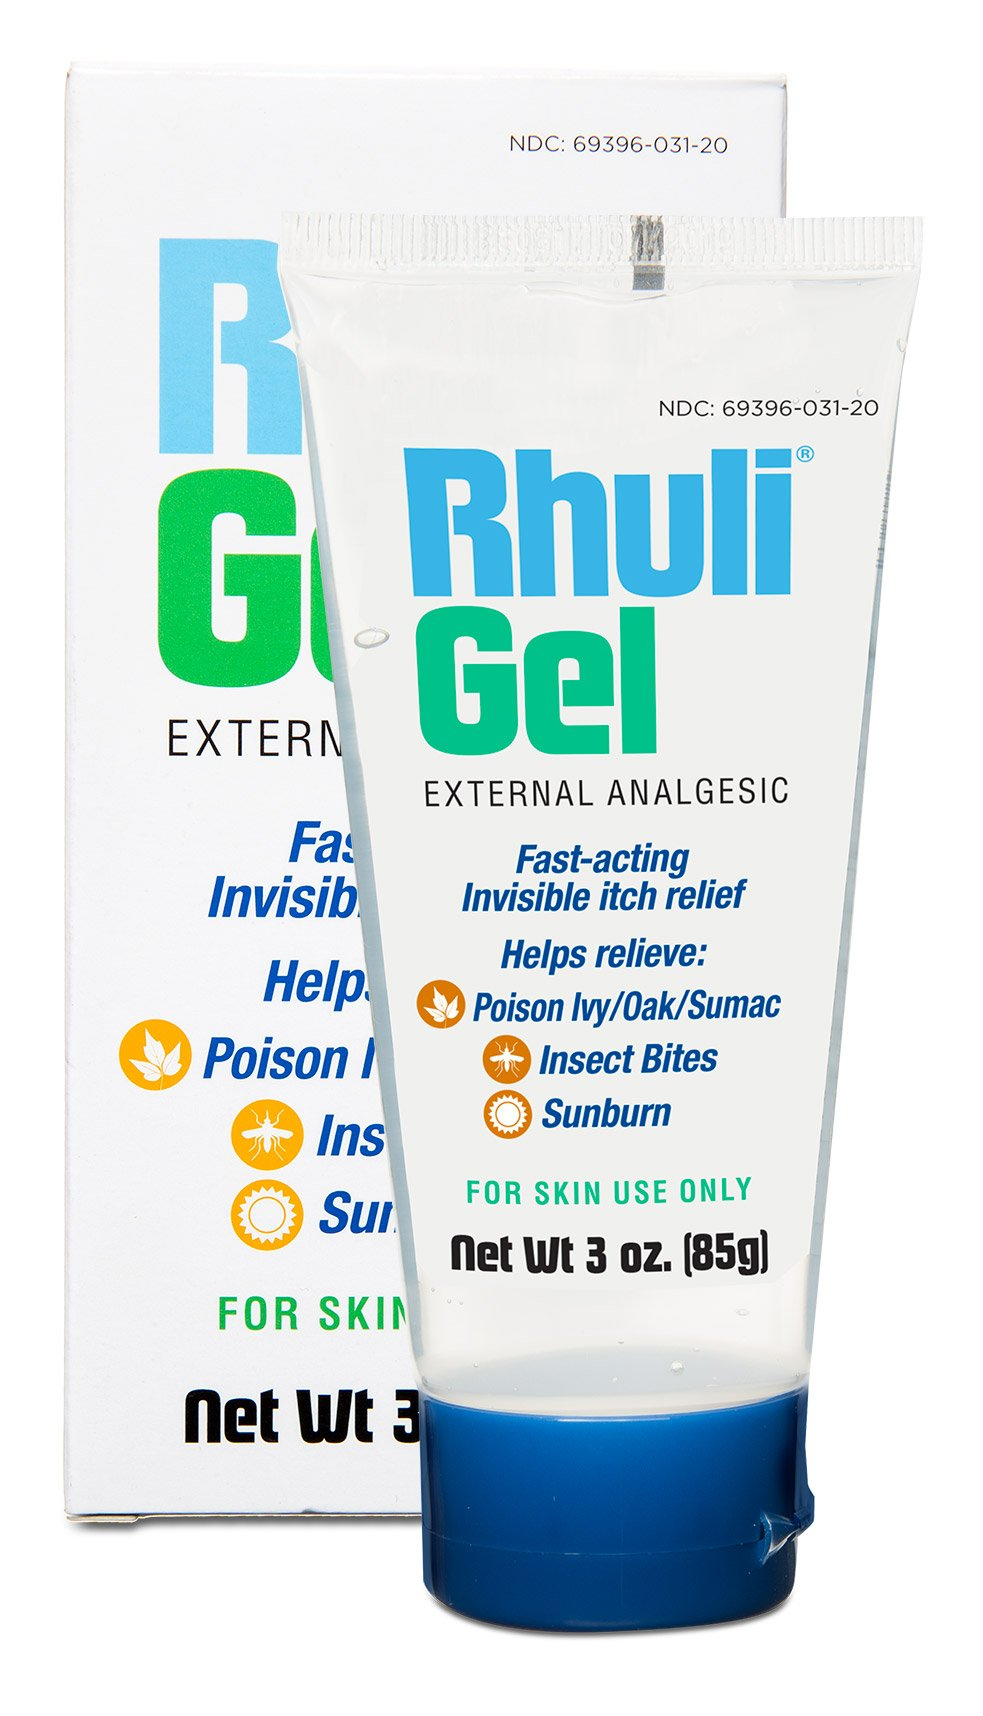 Rhuli Gel (ORIGINAL FORMULA) FAST ACTING INVISIBLE ITCH RELIEF GEL: Helps relieve: Poison Ivy/Oaks, Insect Bites, and more. 2 x 3 Oz Tube (6 oz)